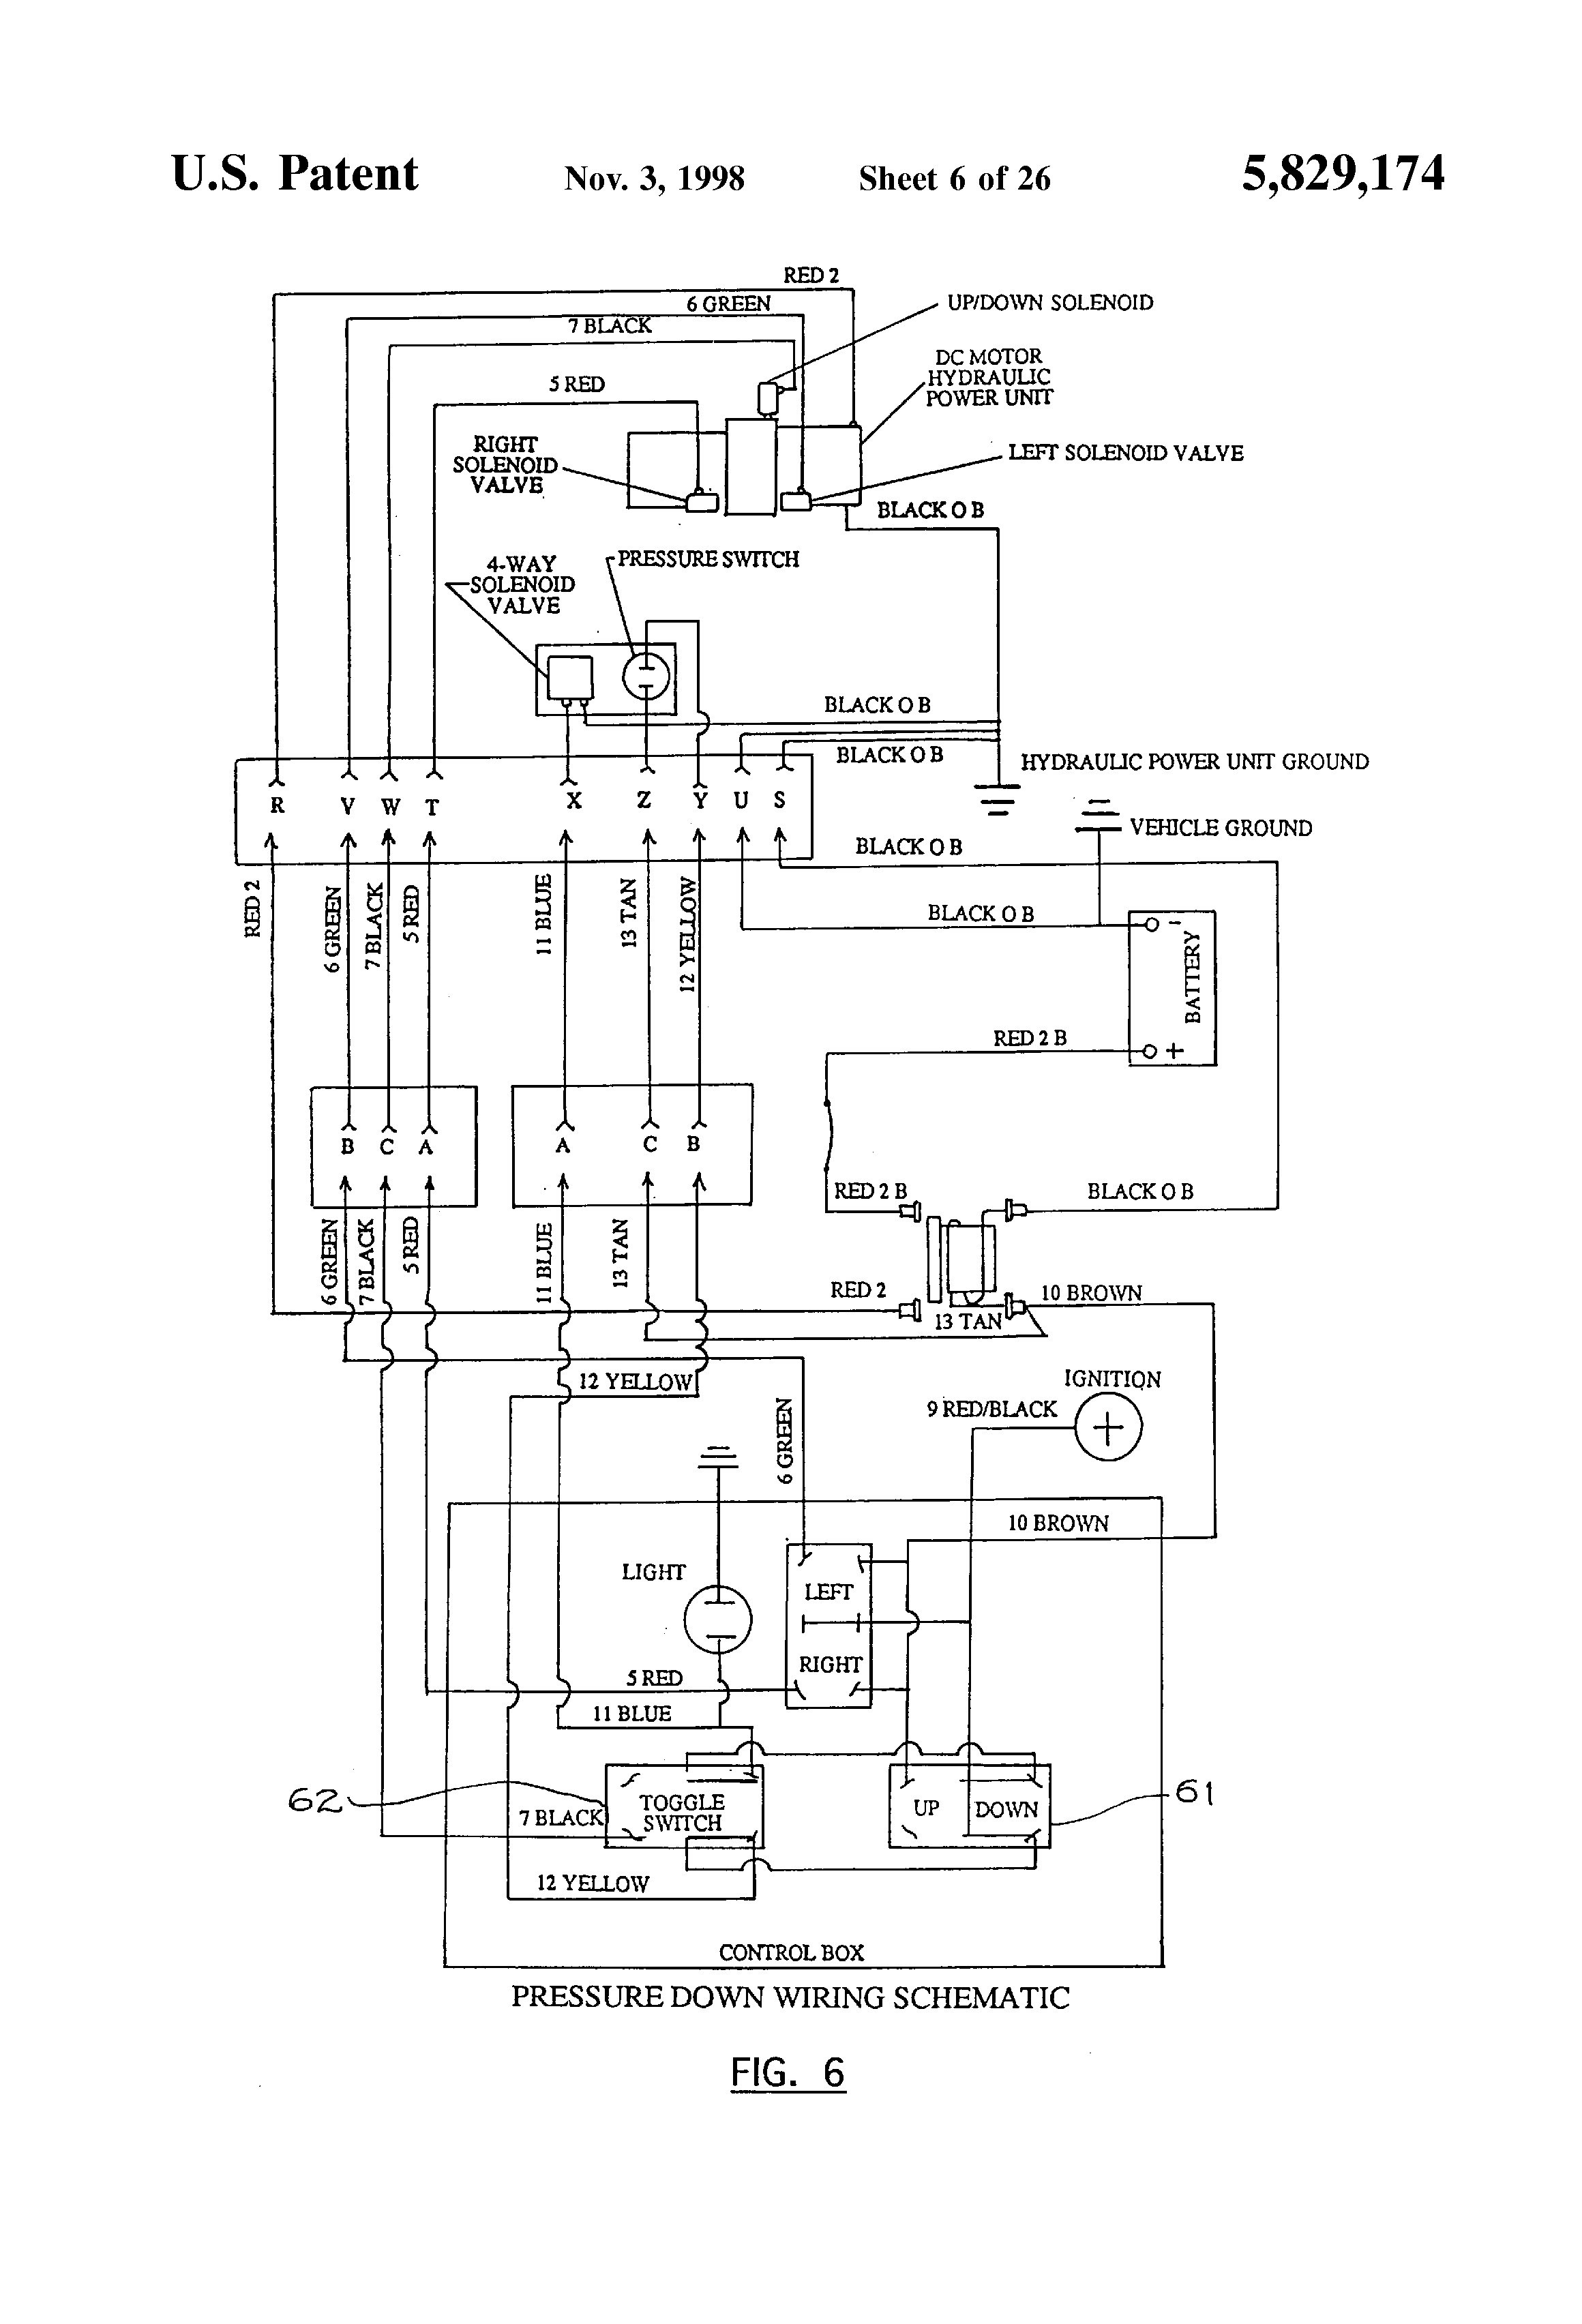 Meyer Plow Pump Wiring Diagram | Manual E-Books - Meyer E47 Wiring Diagram